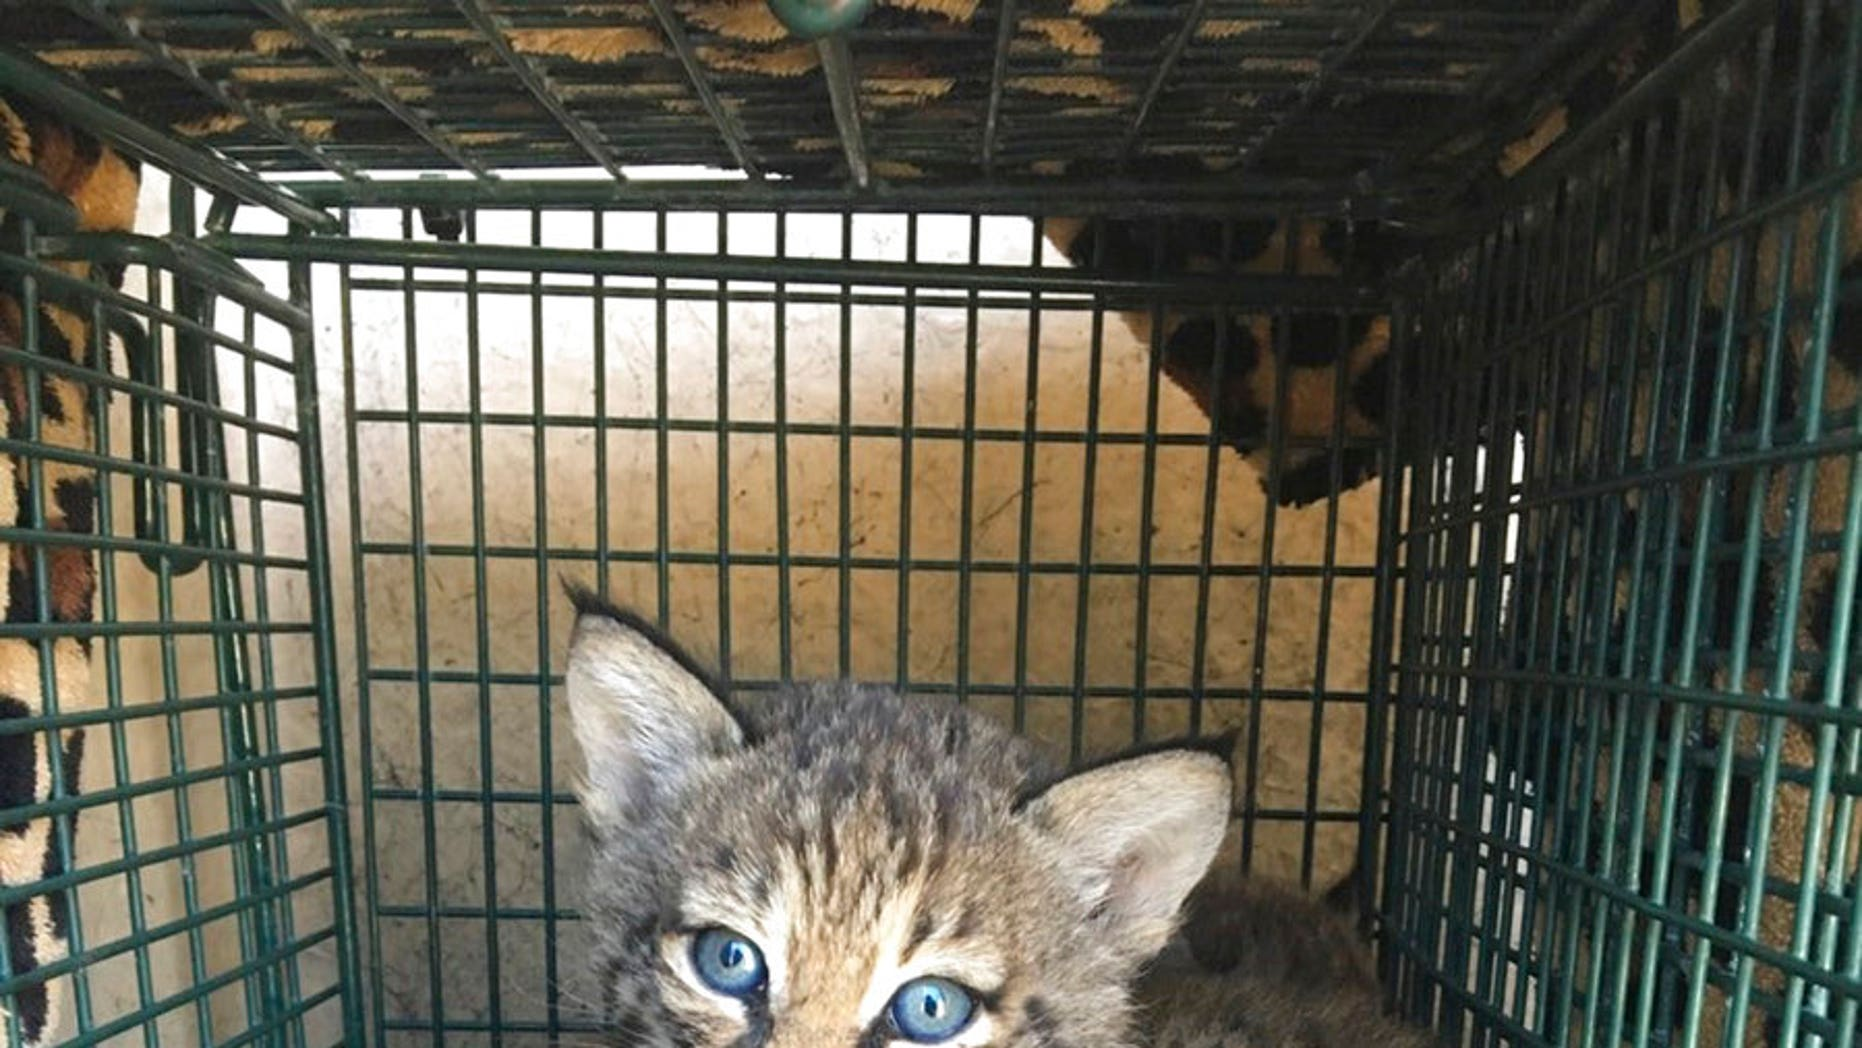 Three people in Texas were bitten after the kittens they thought they were handling turned out to be bobcats.